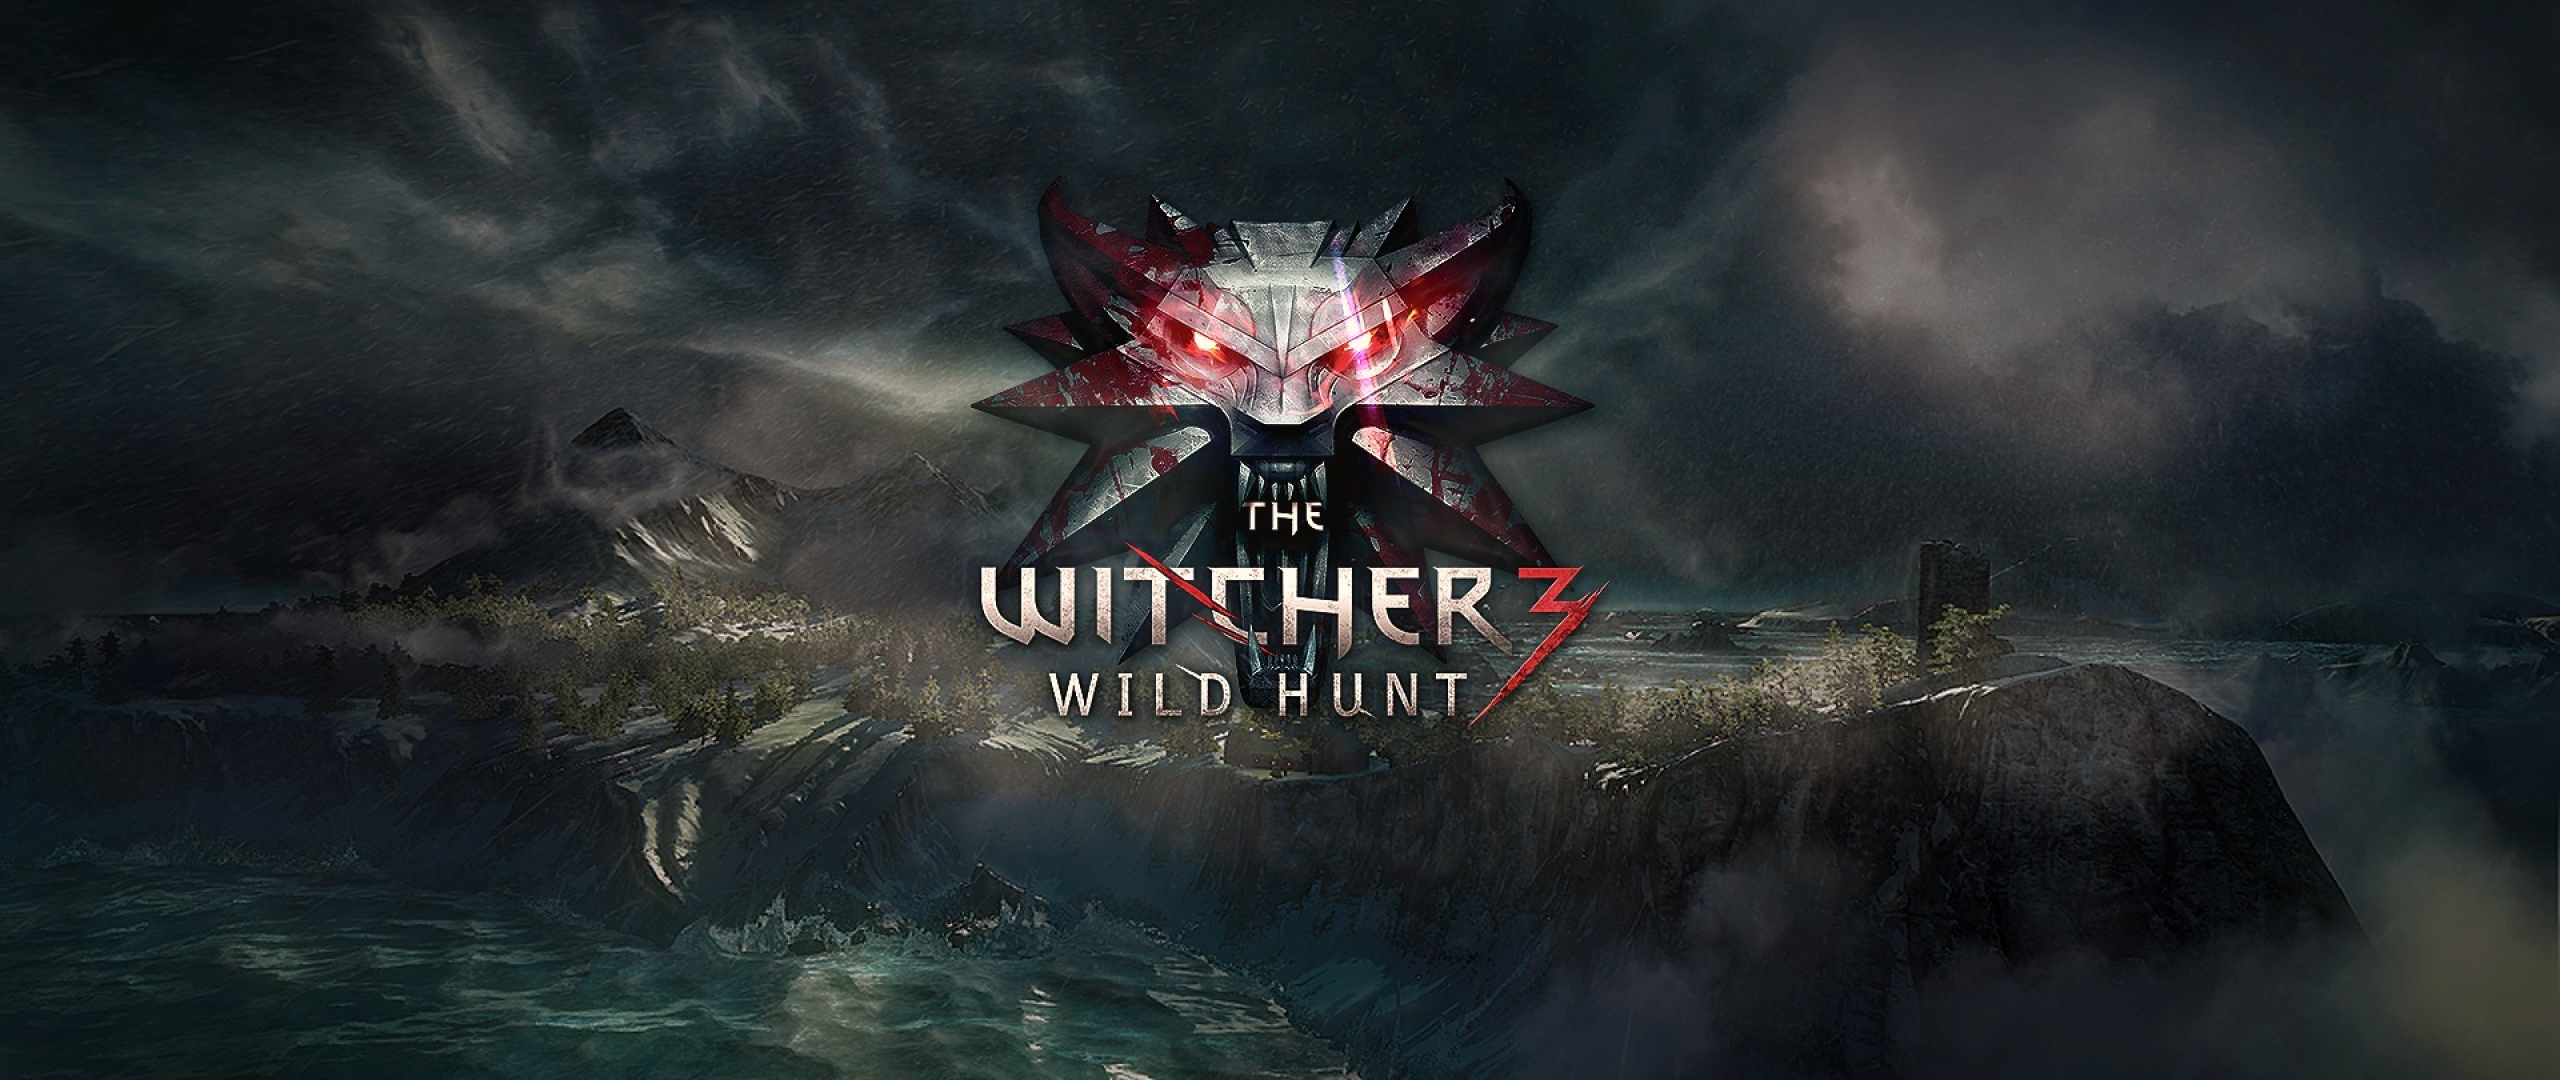 2560x1080 The Witcher 3 Wild Hunt Logo 2560x1080 Resolution